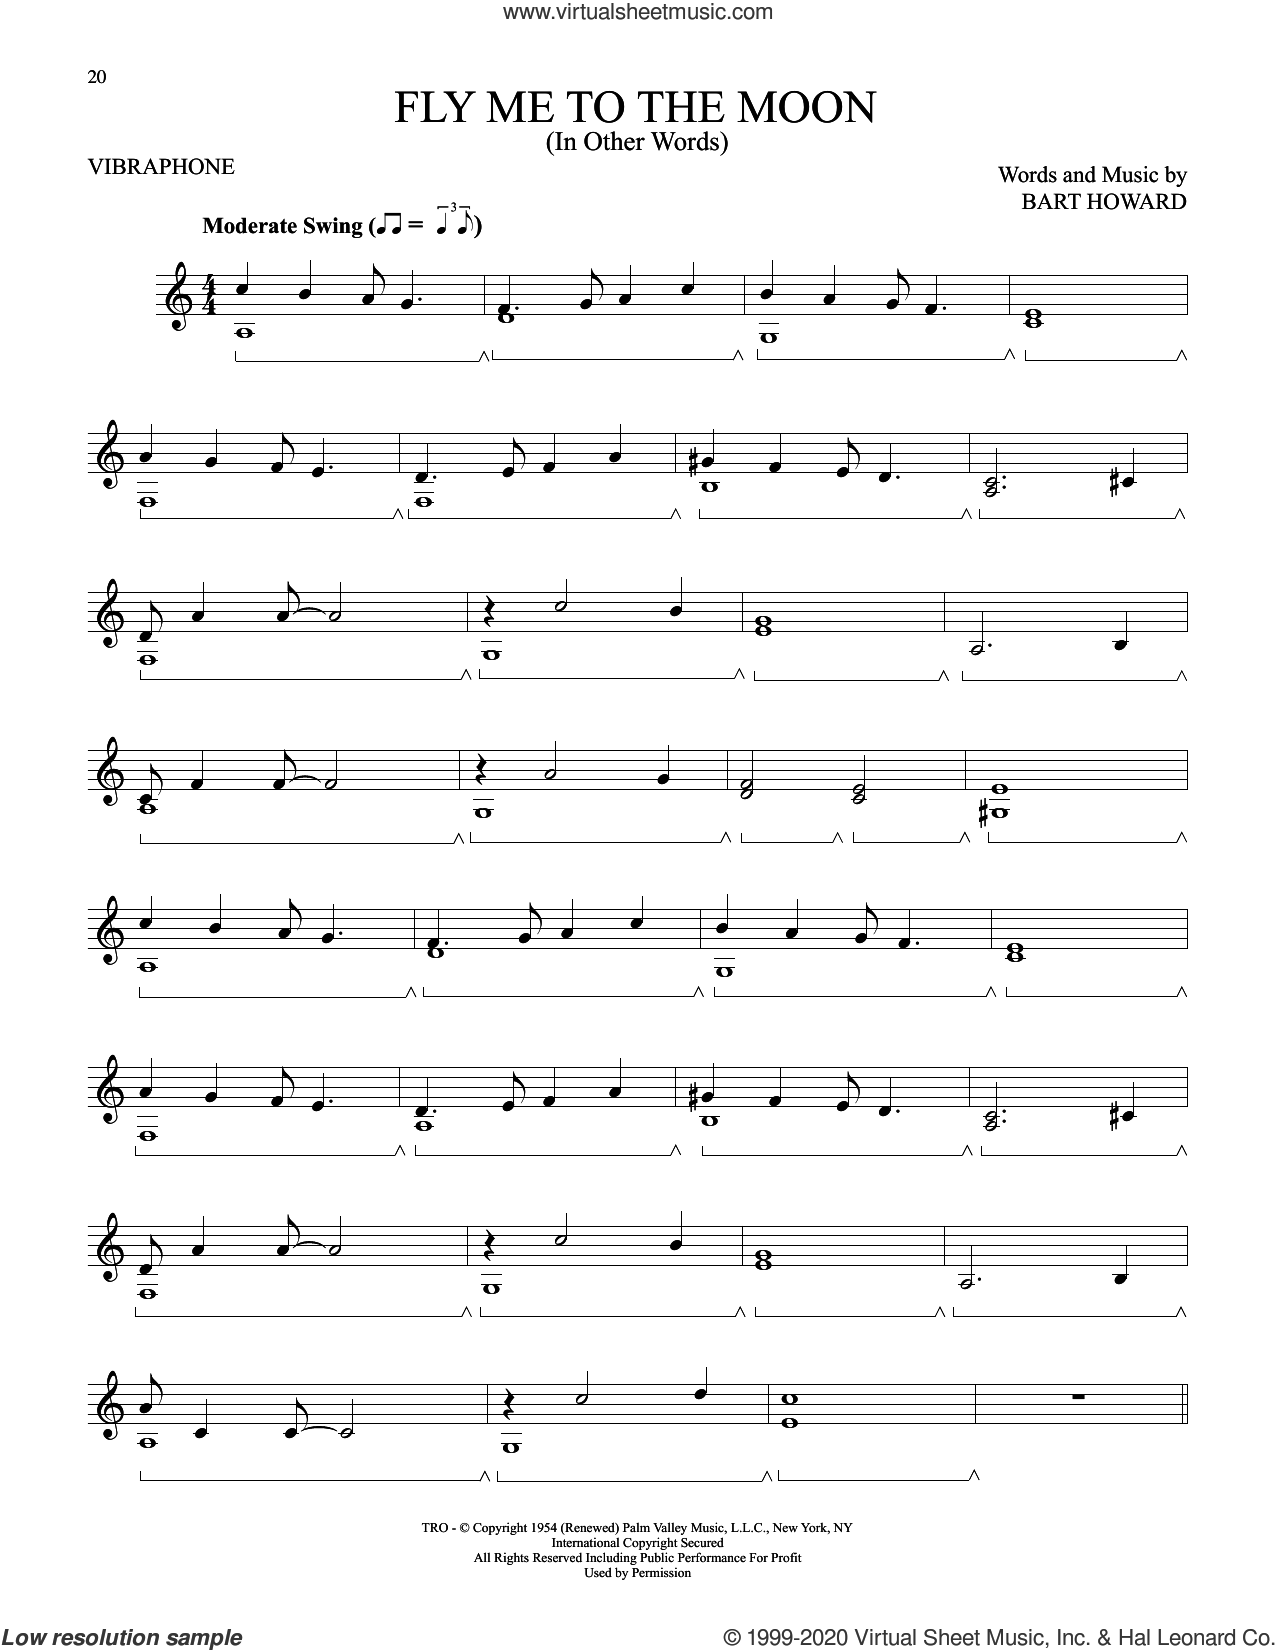 Fly Me To The Moon (In Other Words) sheet music for Vibraphone Solo by Tony Bennett and Bart Howard, intermediate skill level